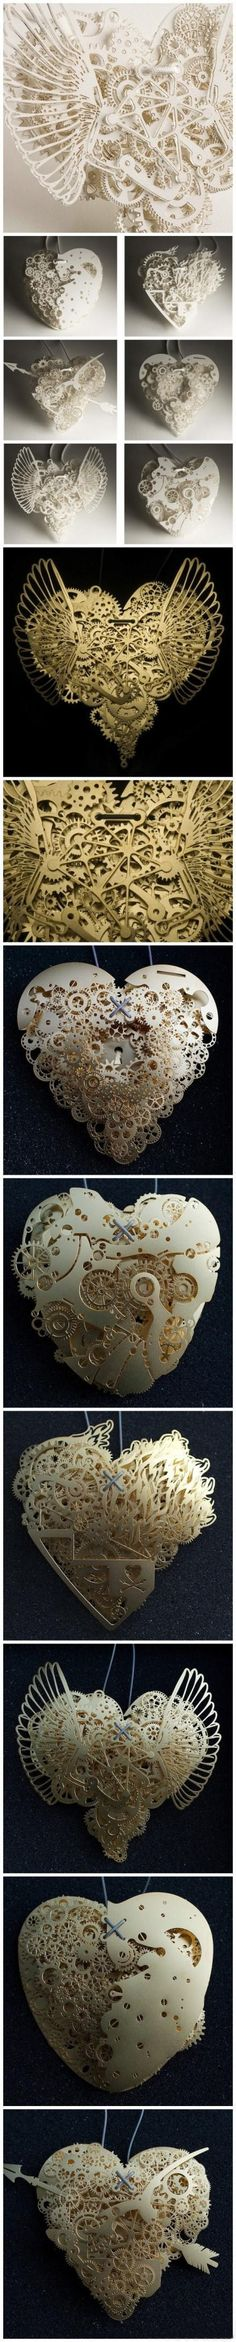 Tutorial origami, the art of . mechanical heart, paper sculpture art - with a steampunk twist 3d Art, Sculpture Art, Paper Sculptures, Paper Hearts, Creative Words, Paper Cutting, Amazing Art, Awesome, Book Art